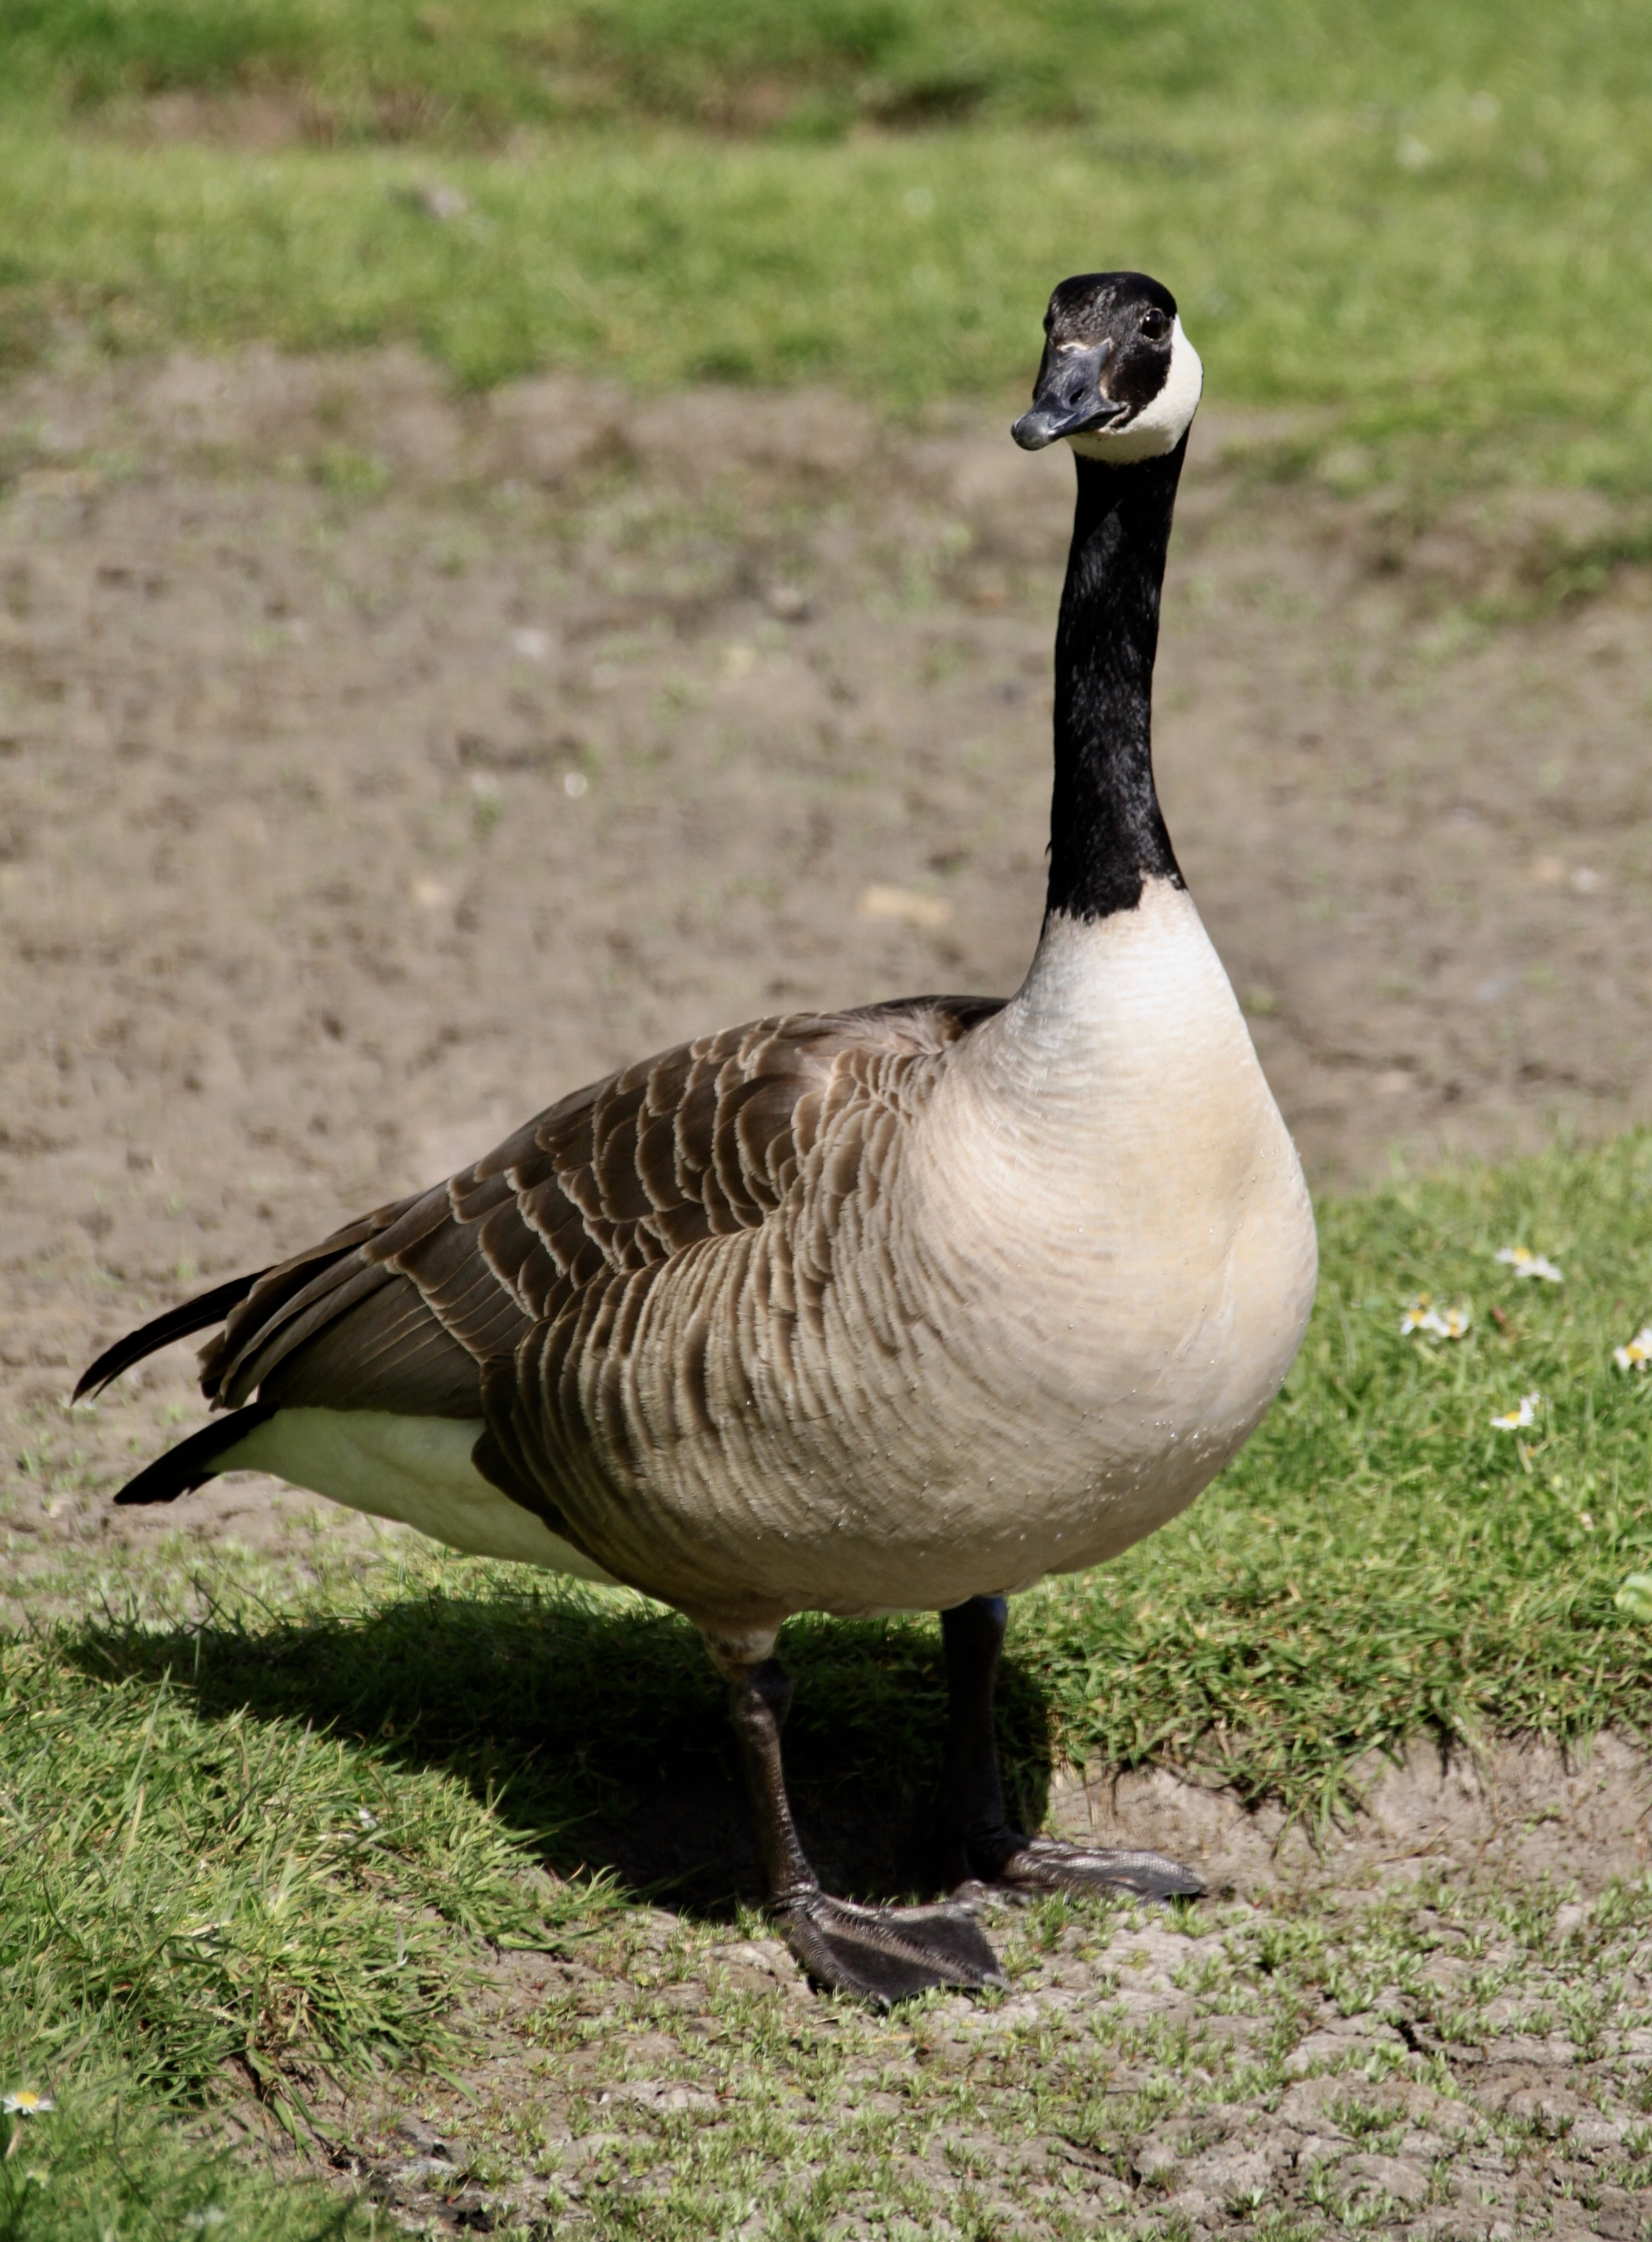 Canadian Goose at Broadwood Loch by Jez Braithwaite